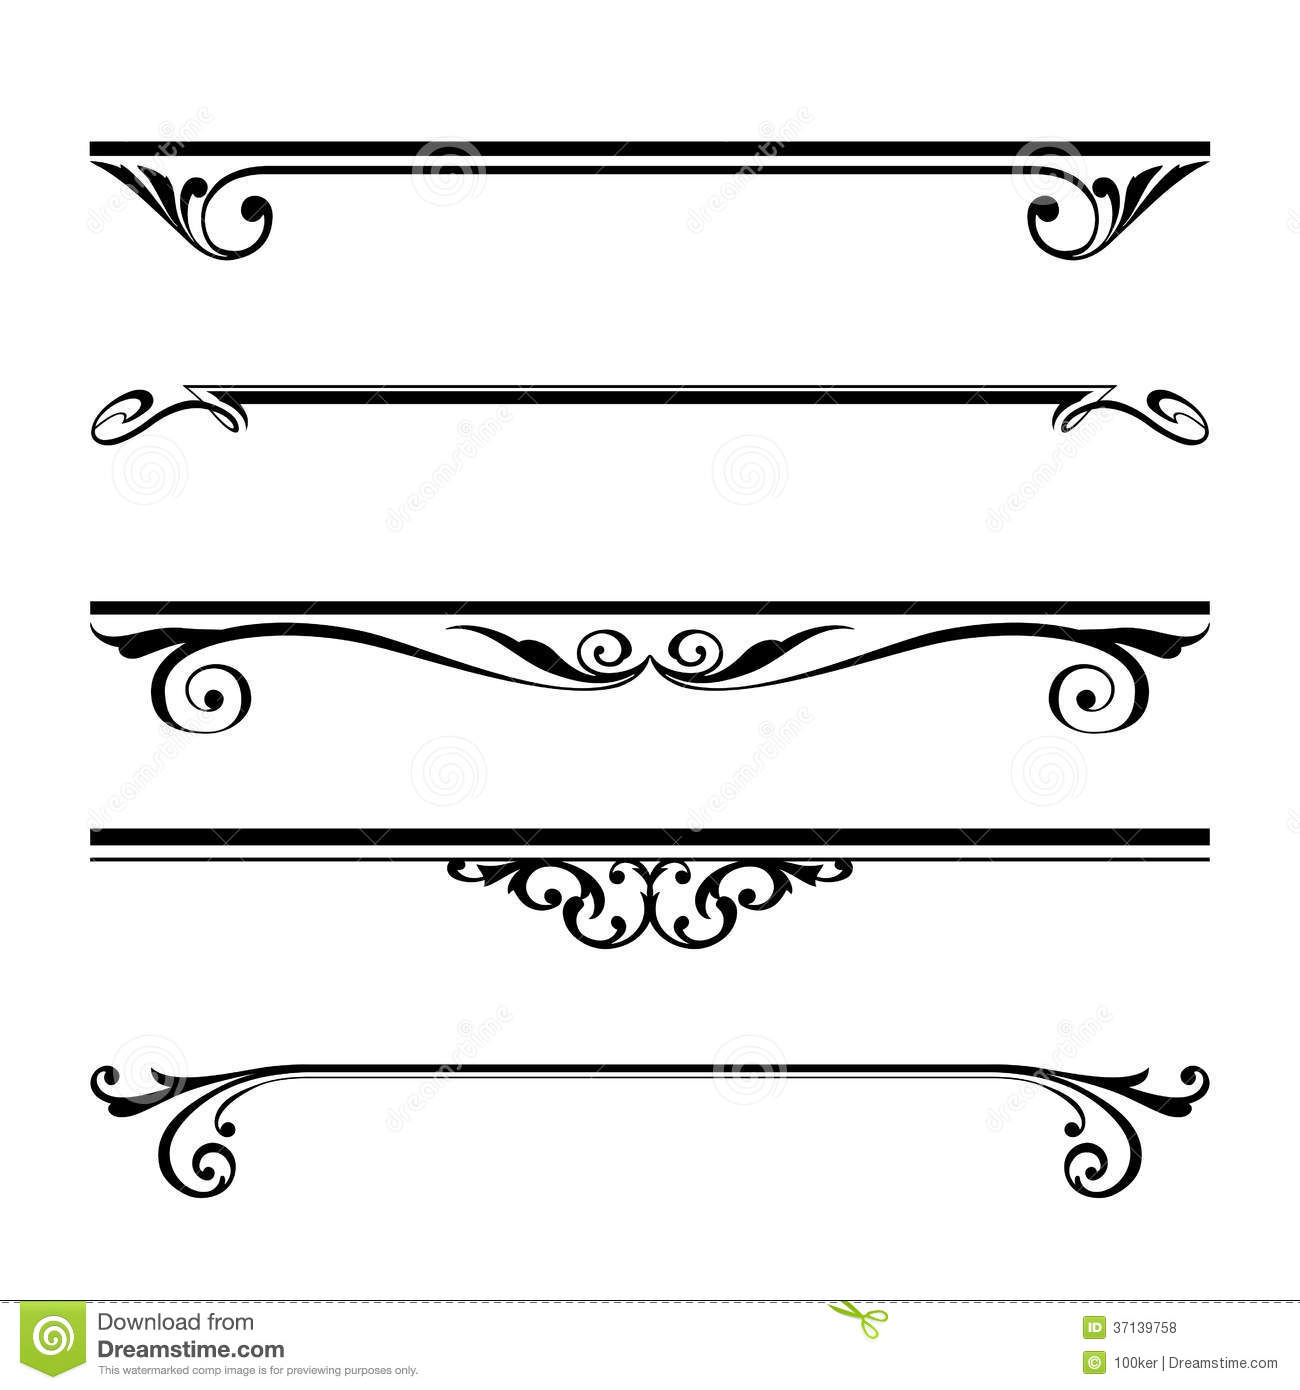 Decorative Elements Border And Page Rules Fretwork Black